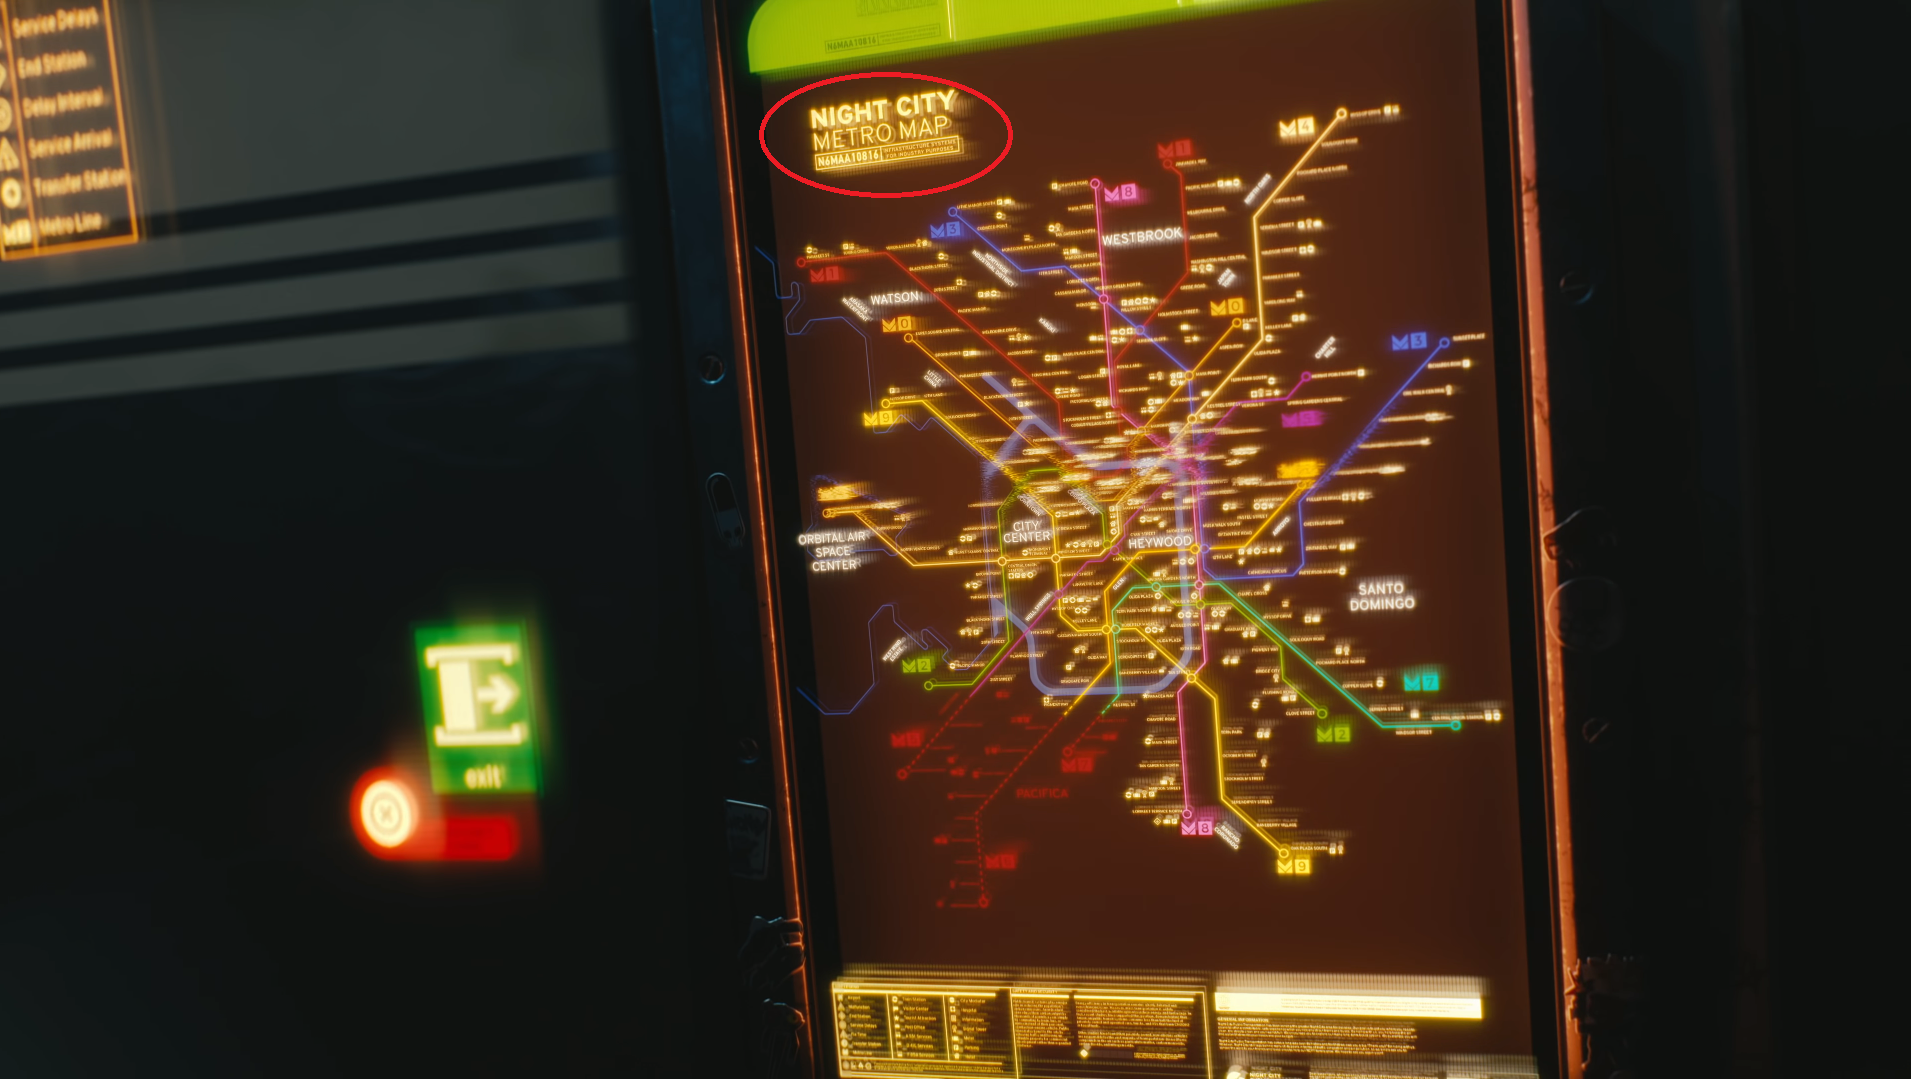 Night City Metro map with part of it circled. It says N6MAA10816.